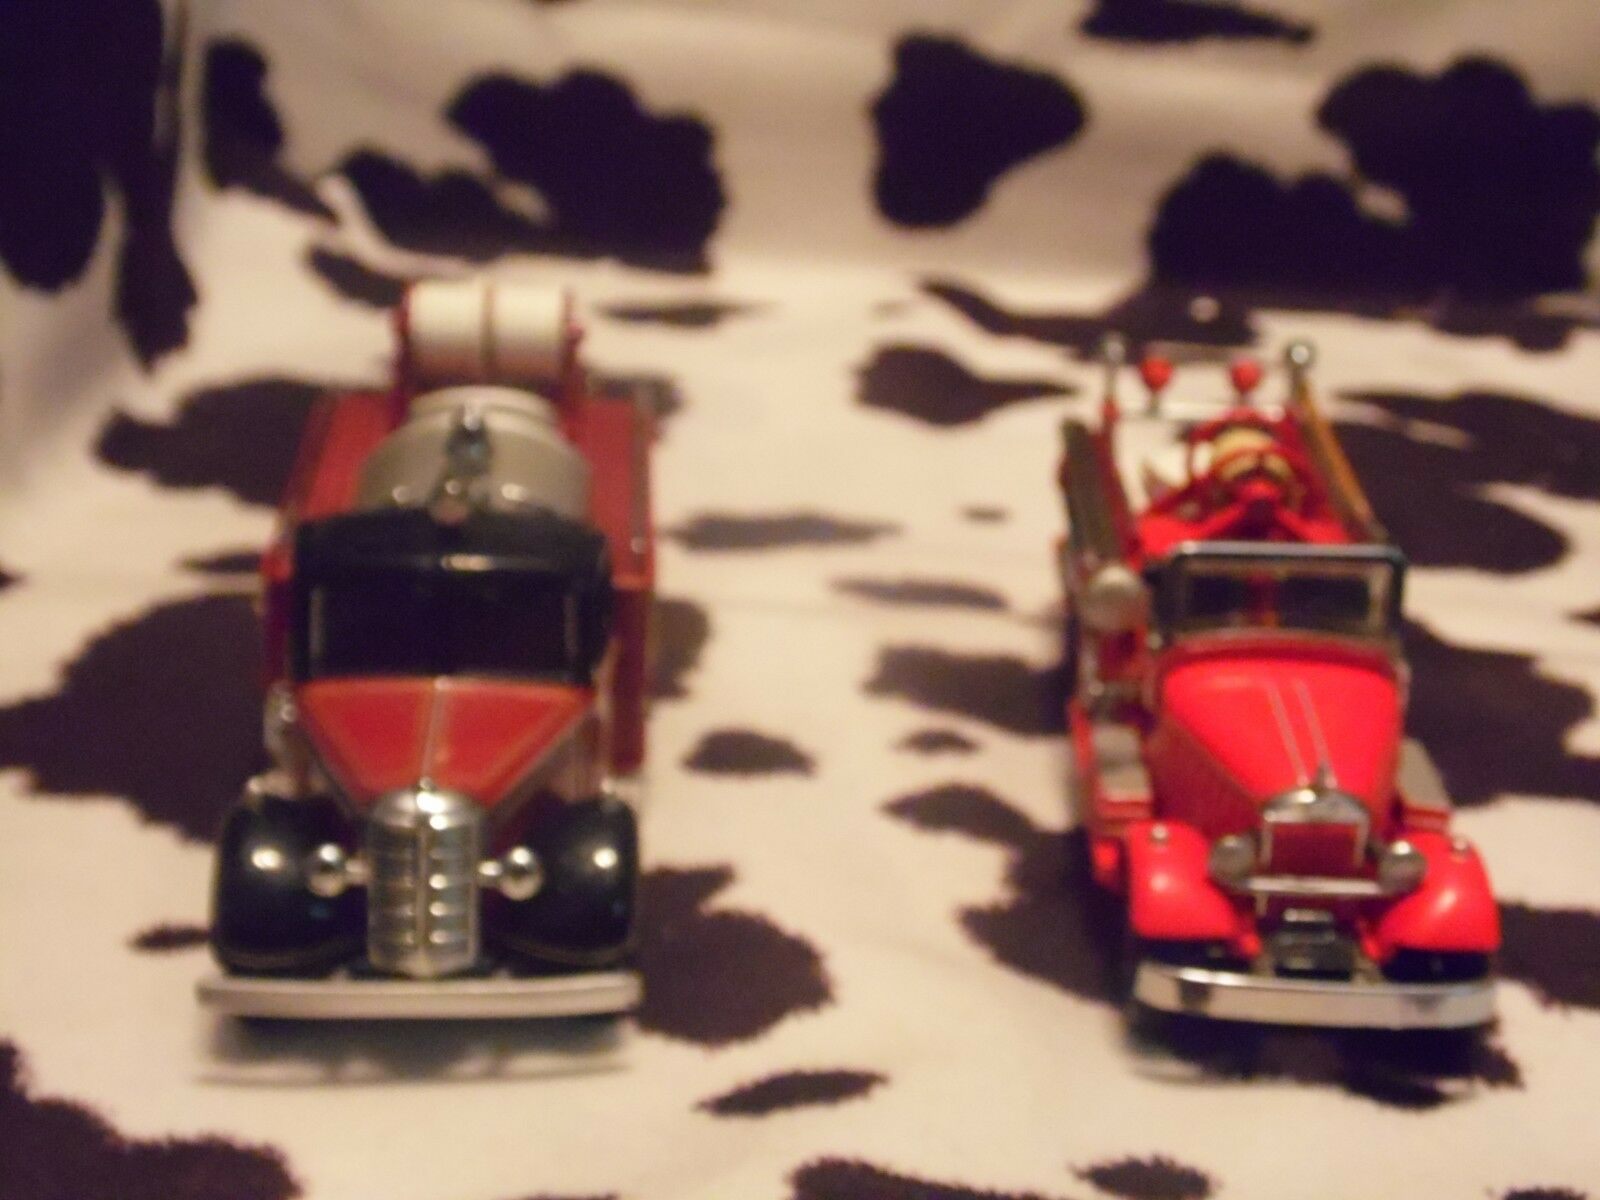 (QTY of 2) MATCHBOX Models of Yesteryear YYM35191 & YFE15 EXCELLENTLY DETAILED